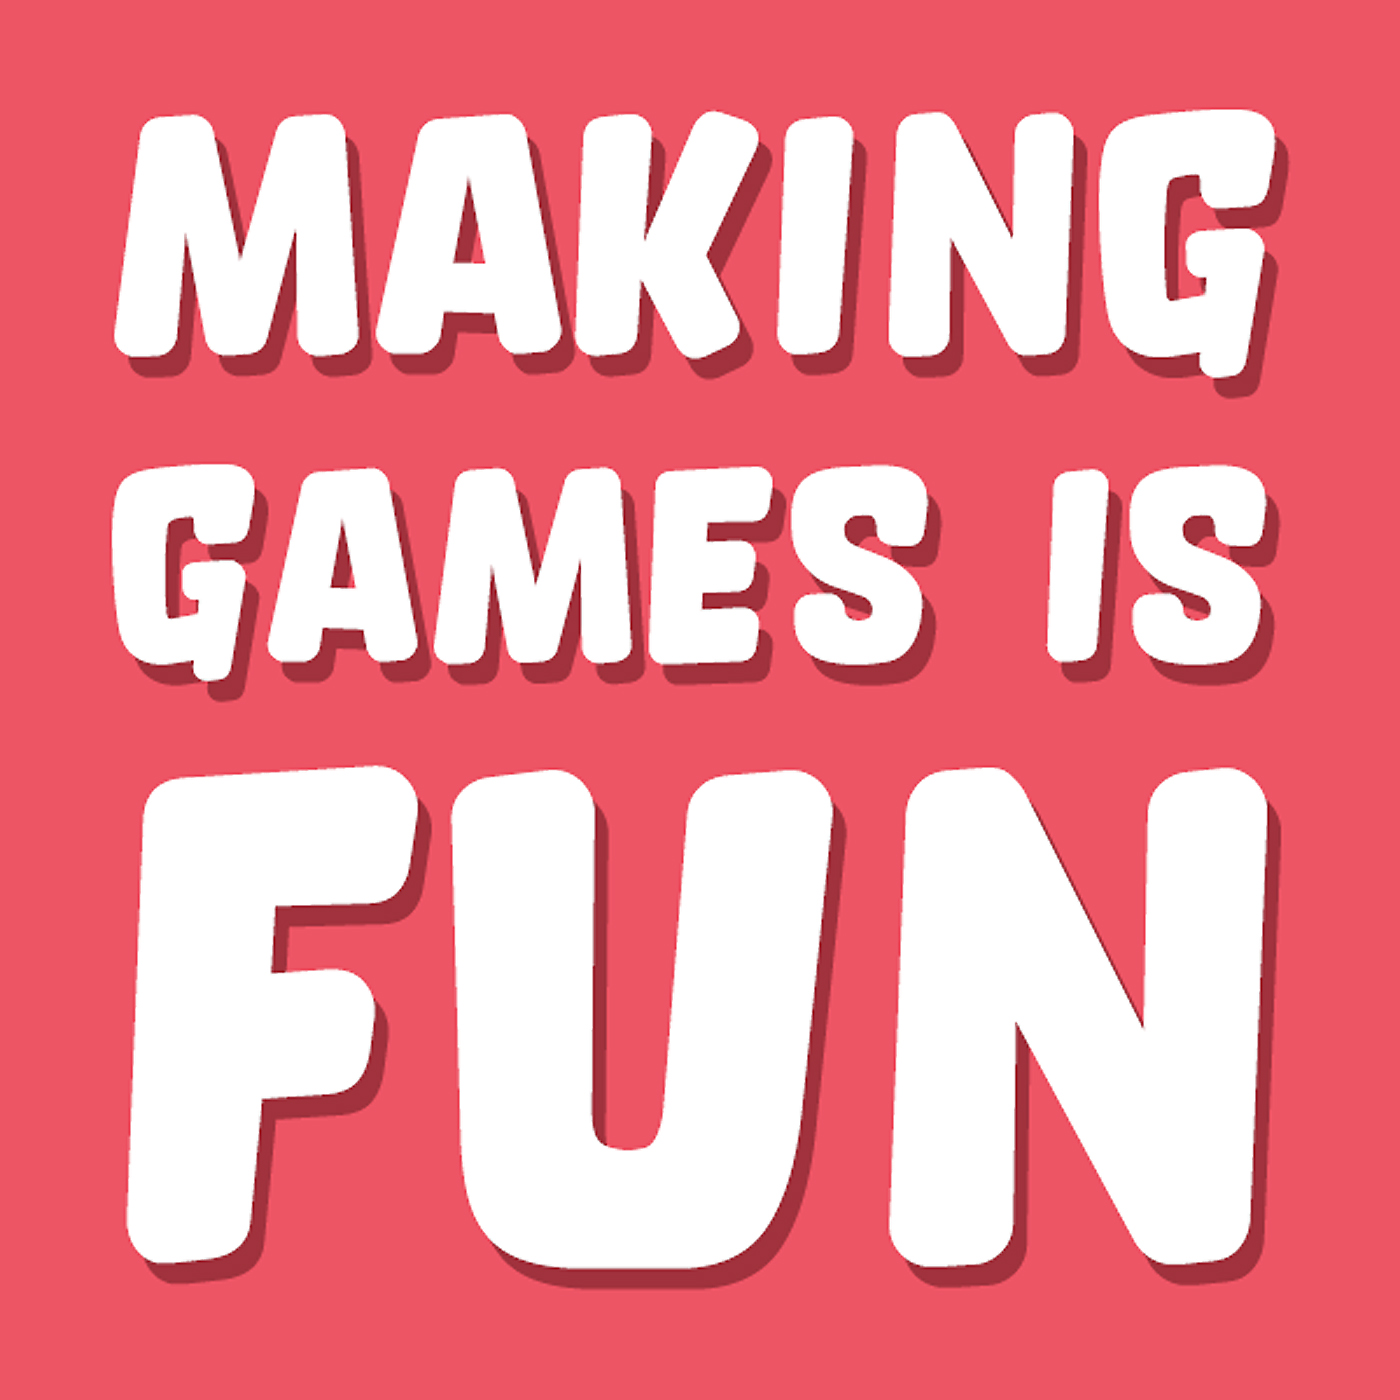 Making Games Is Fun - Gareth Dutton